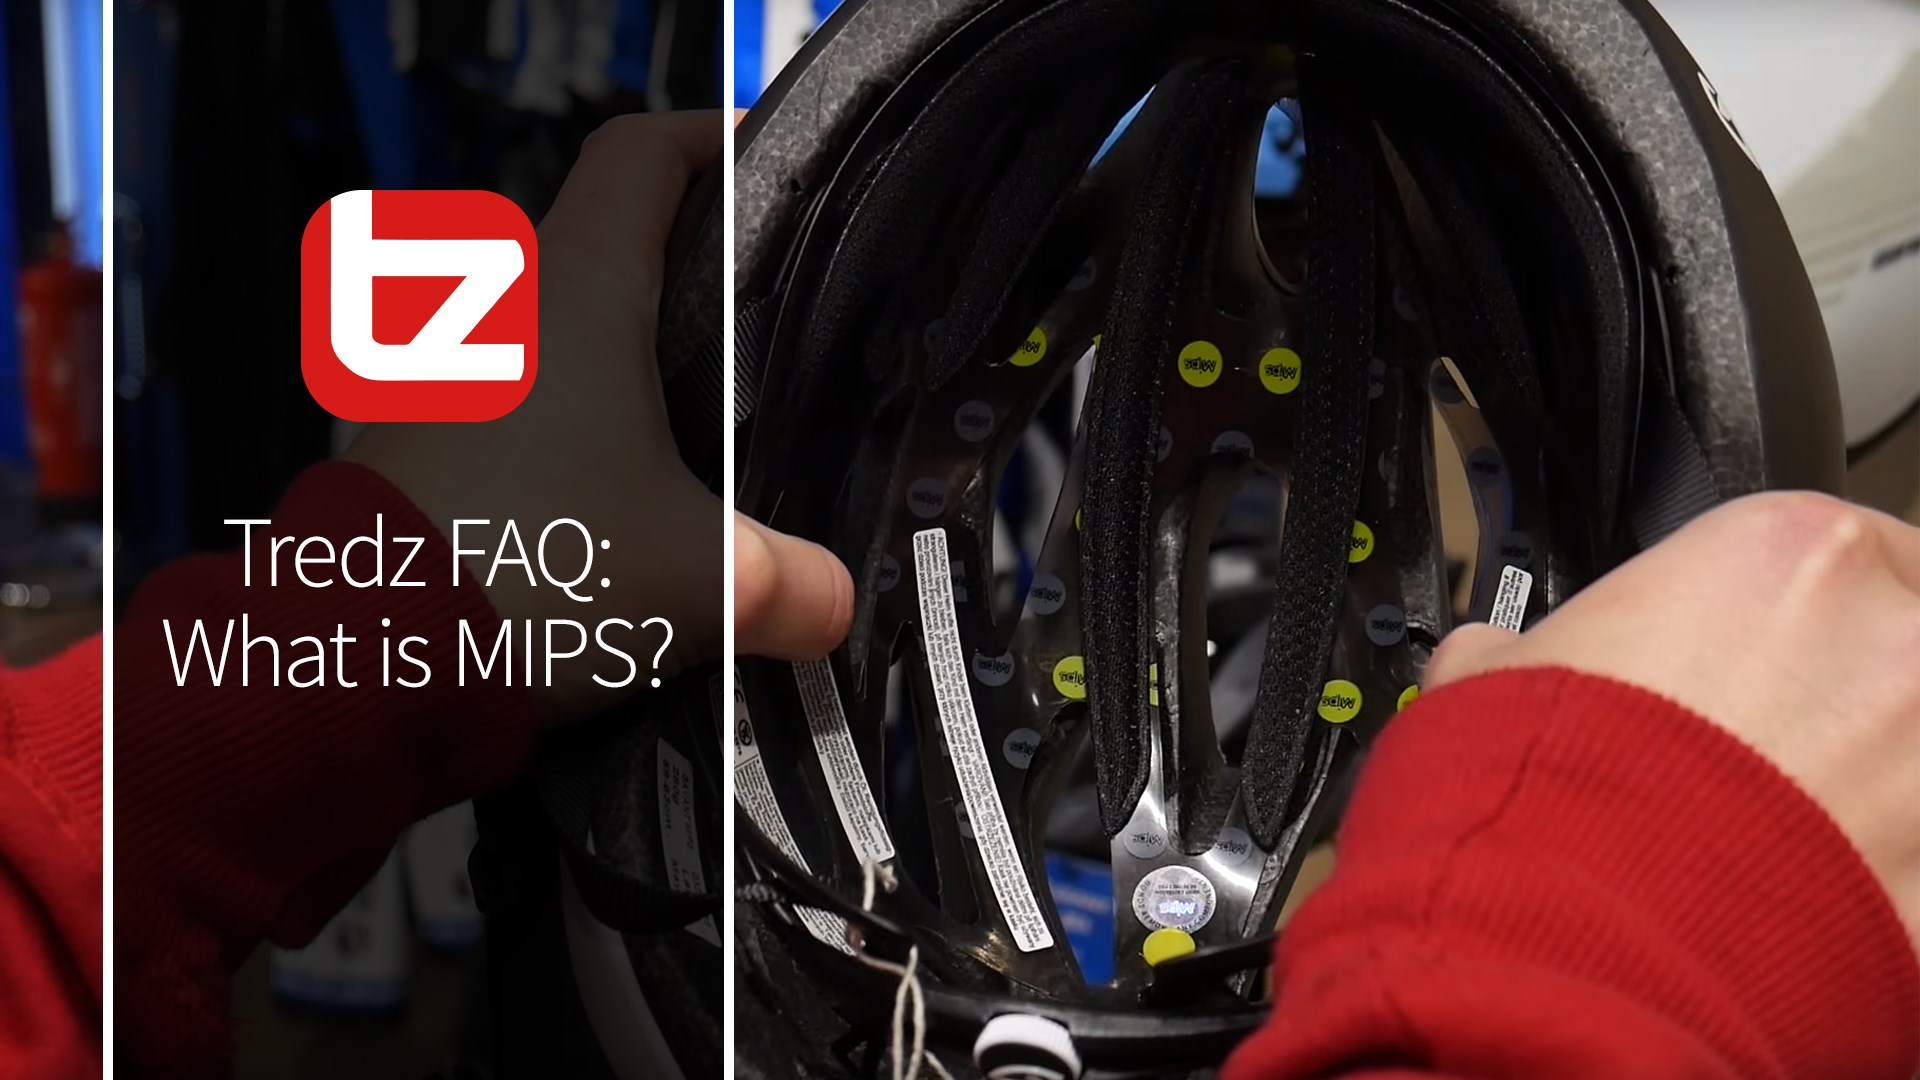 Tredz FAQ: What is MIPS?